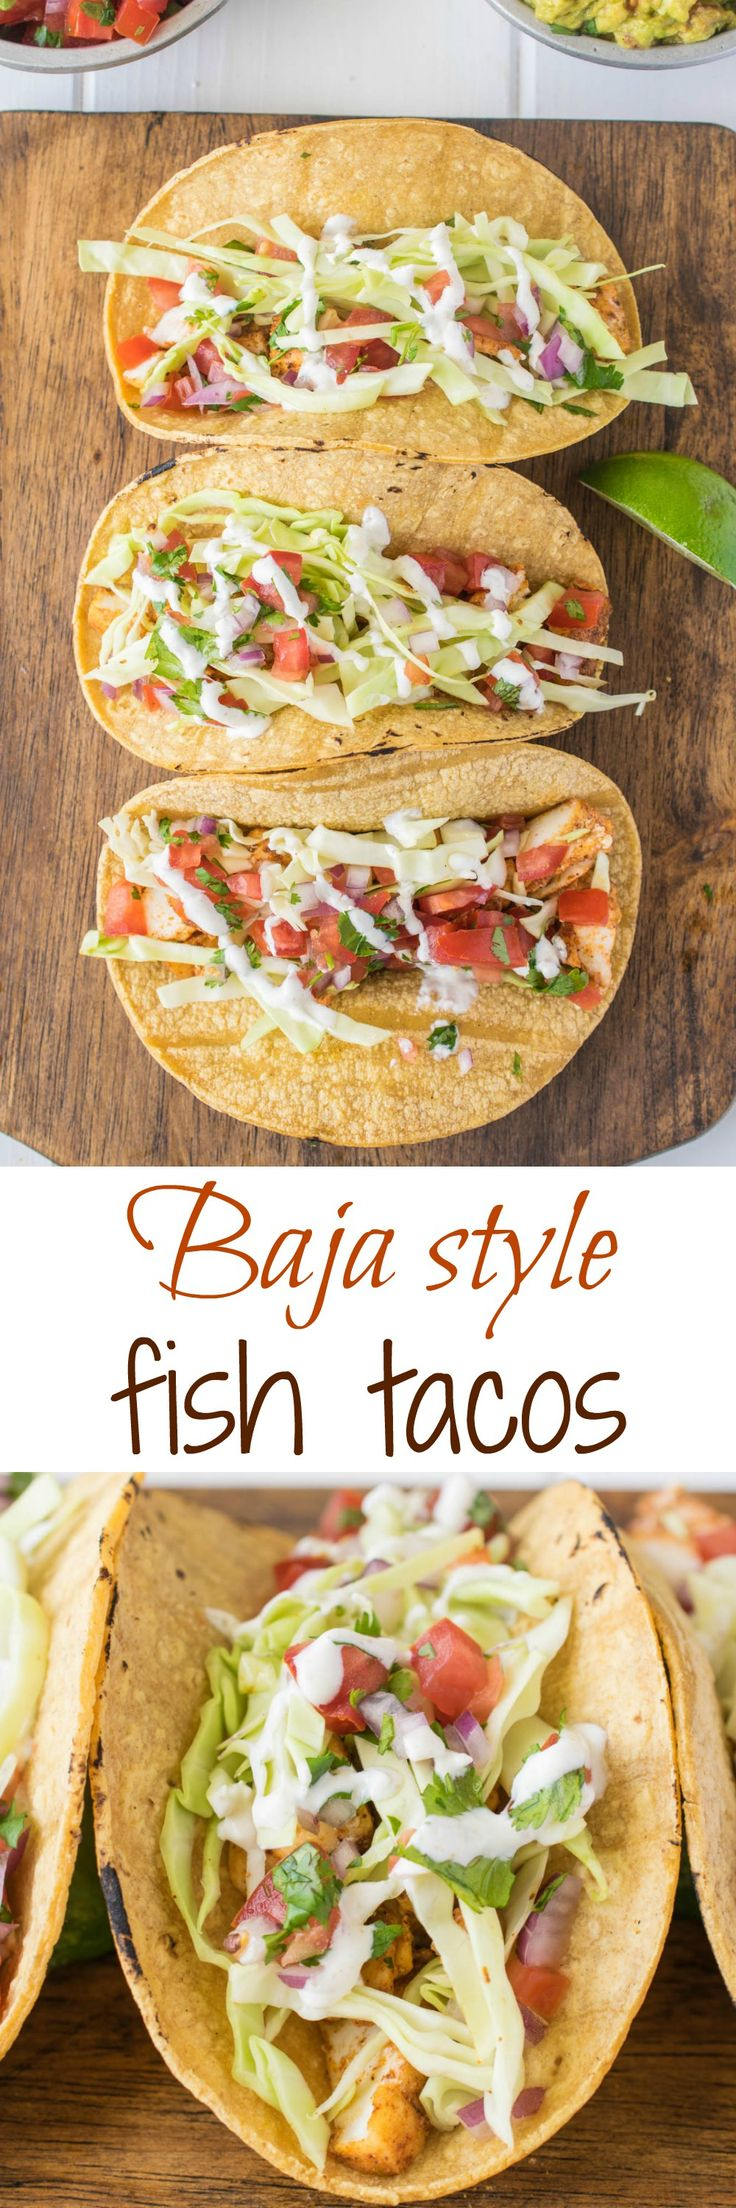 Baja style fish tacos. Mexican spiced halibut pieces are sautéed, then nestled in corn tortillas with fresh shredded cabbage and homemade pico de gallo with lime crema